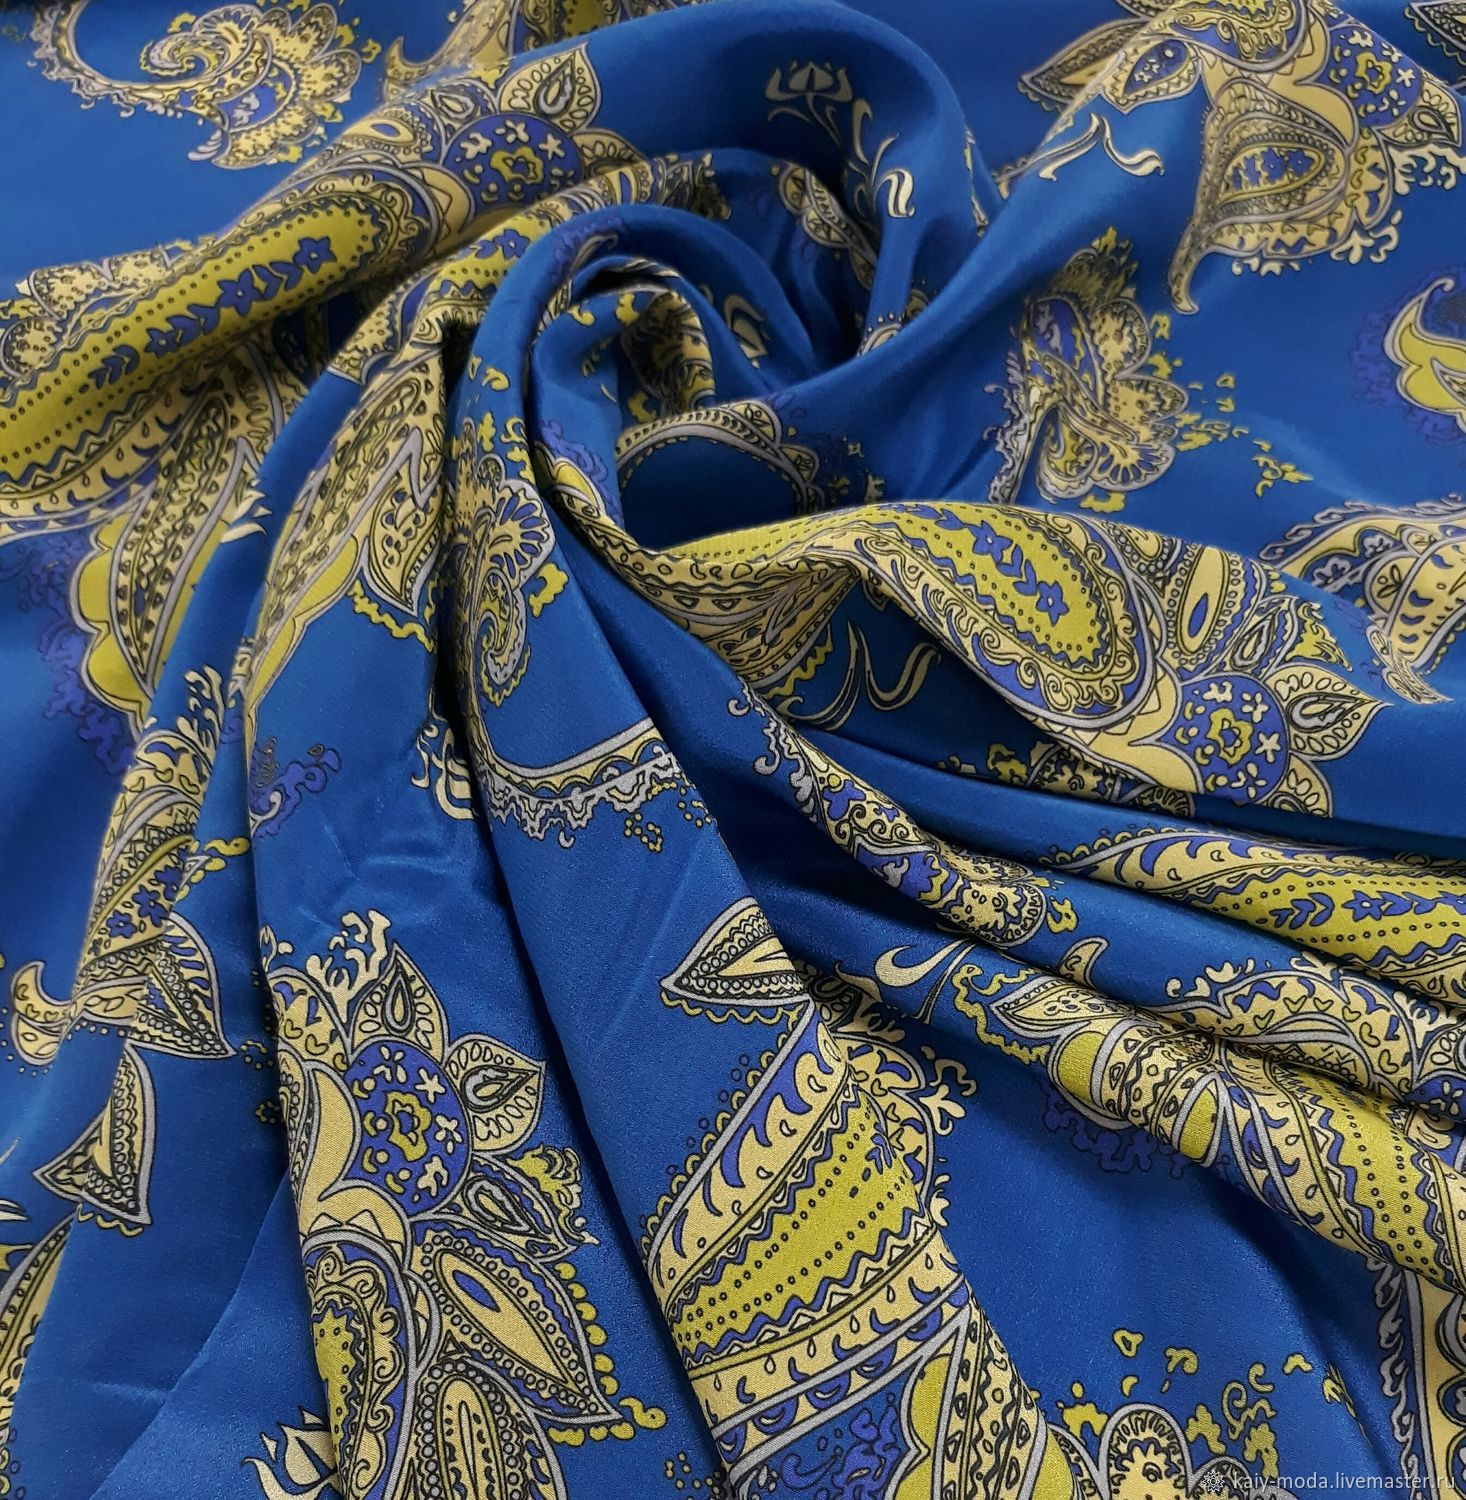 Etro-Paisley crepe silk on ultra blue, Fabric, Moscow,  Фото №1